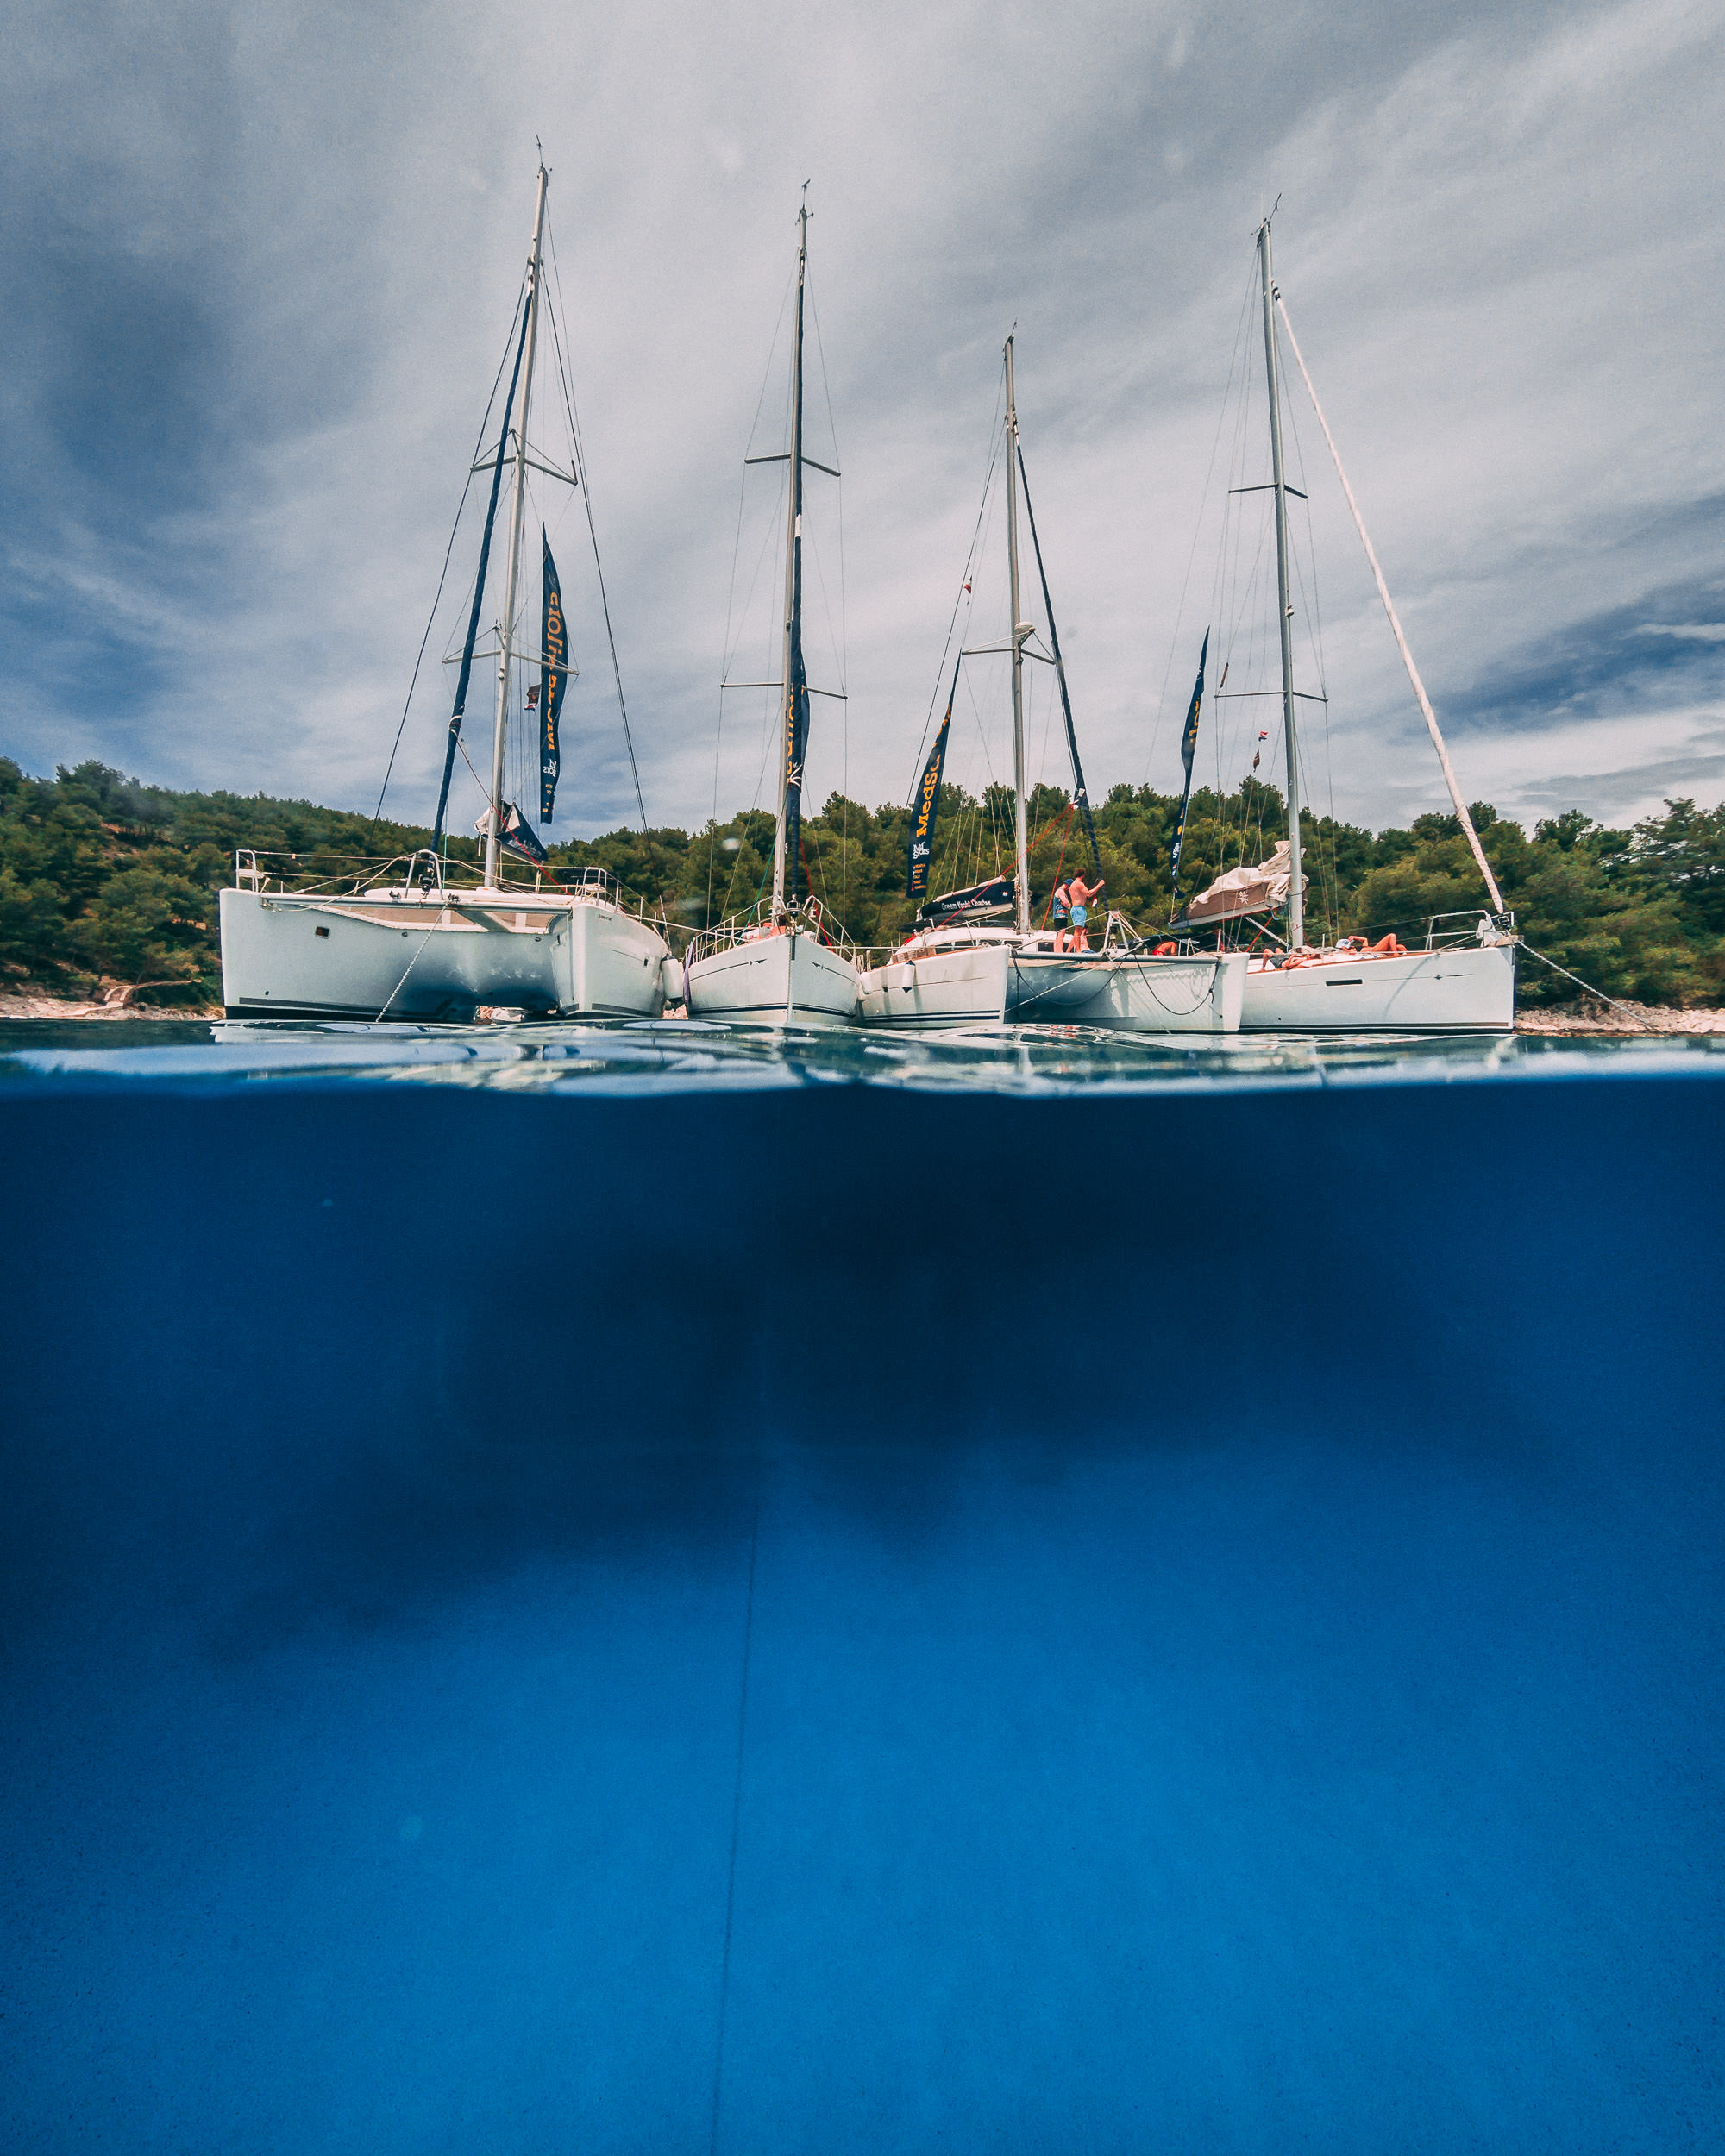 Tying our yachts together to create a raft on the coast of Hvar Island, Croatia